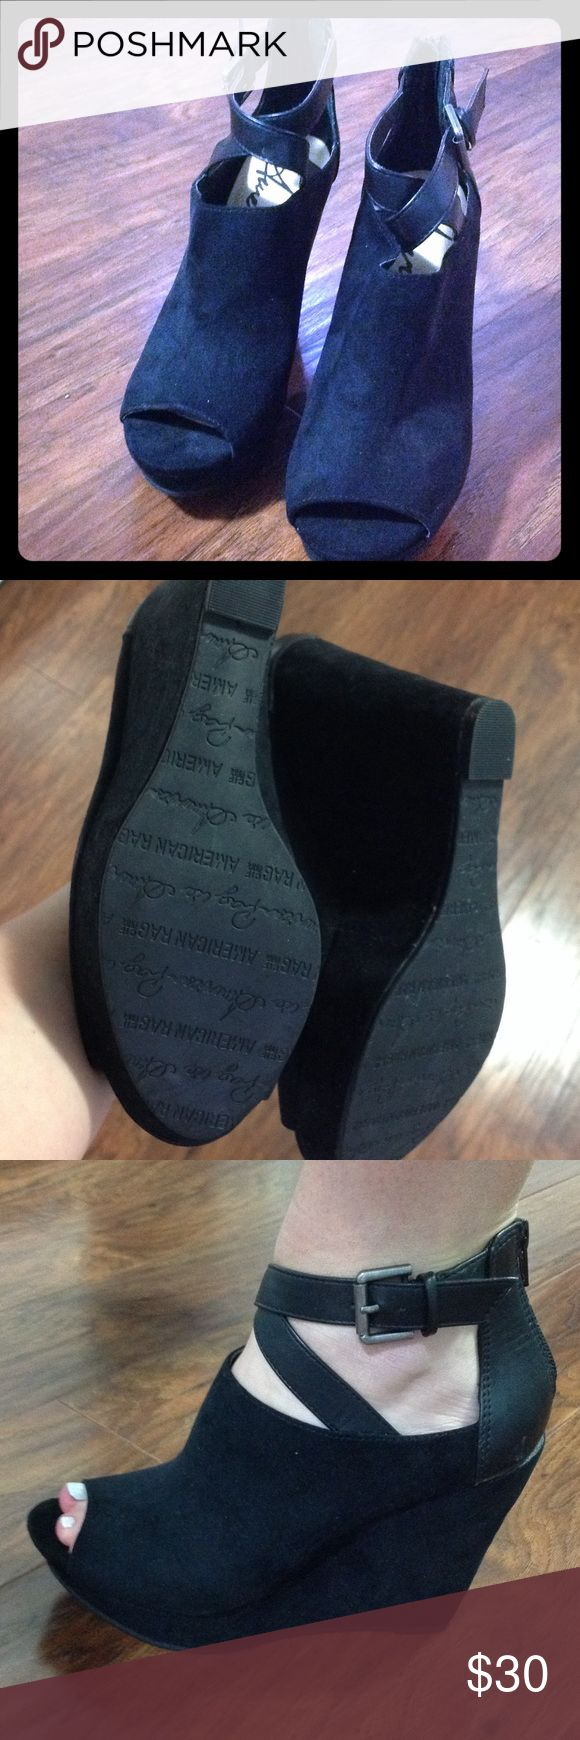 Black suede wedge with ankle strap and peep toe NWOT! Suede platform wedge with pleather ankle strap. Never been worn, look brand new! Shoes Wedges